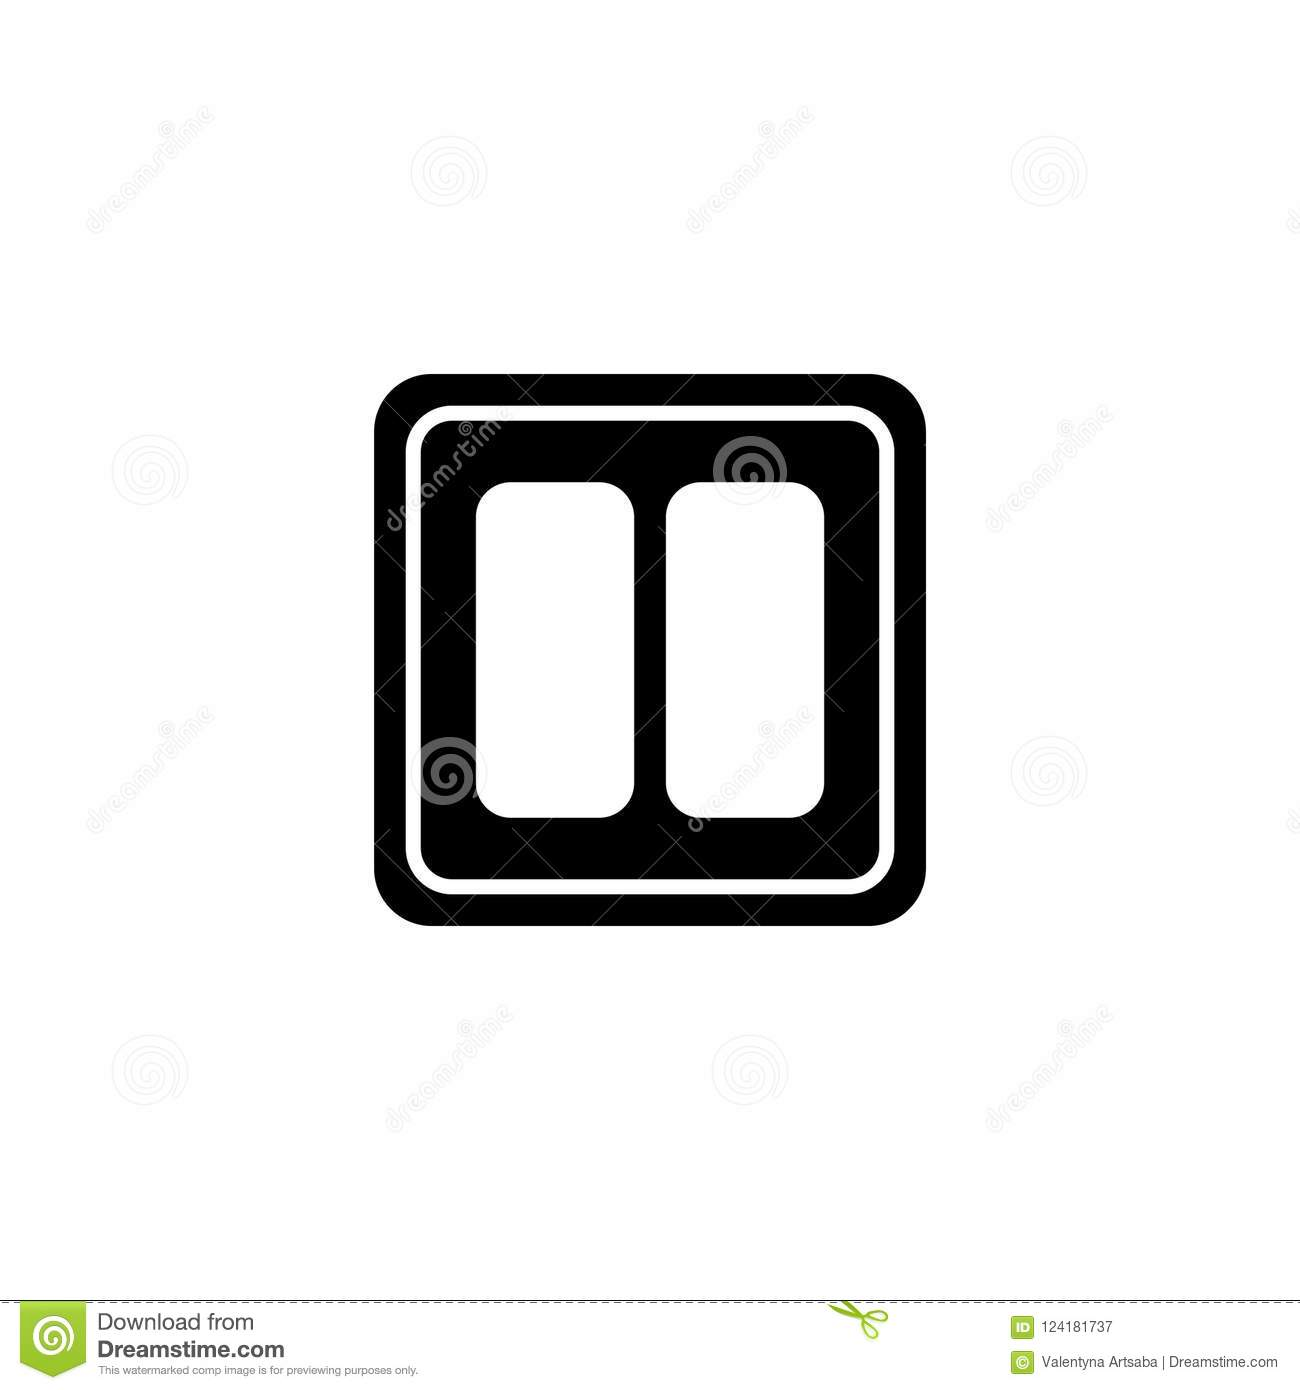 Light Switch Symbol Cliparet Electric Flat Vector Icon Stock Illustration 1300x1390